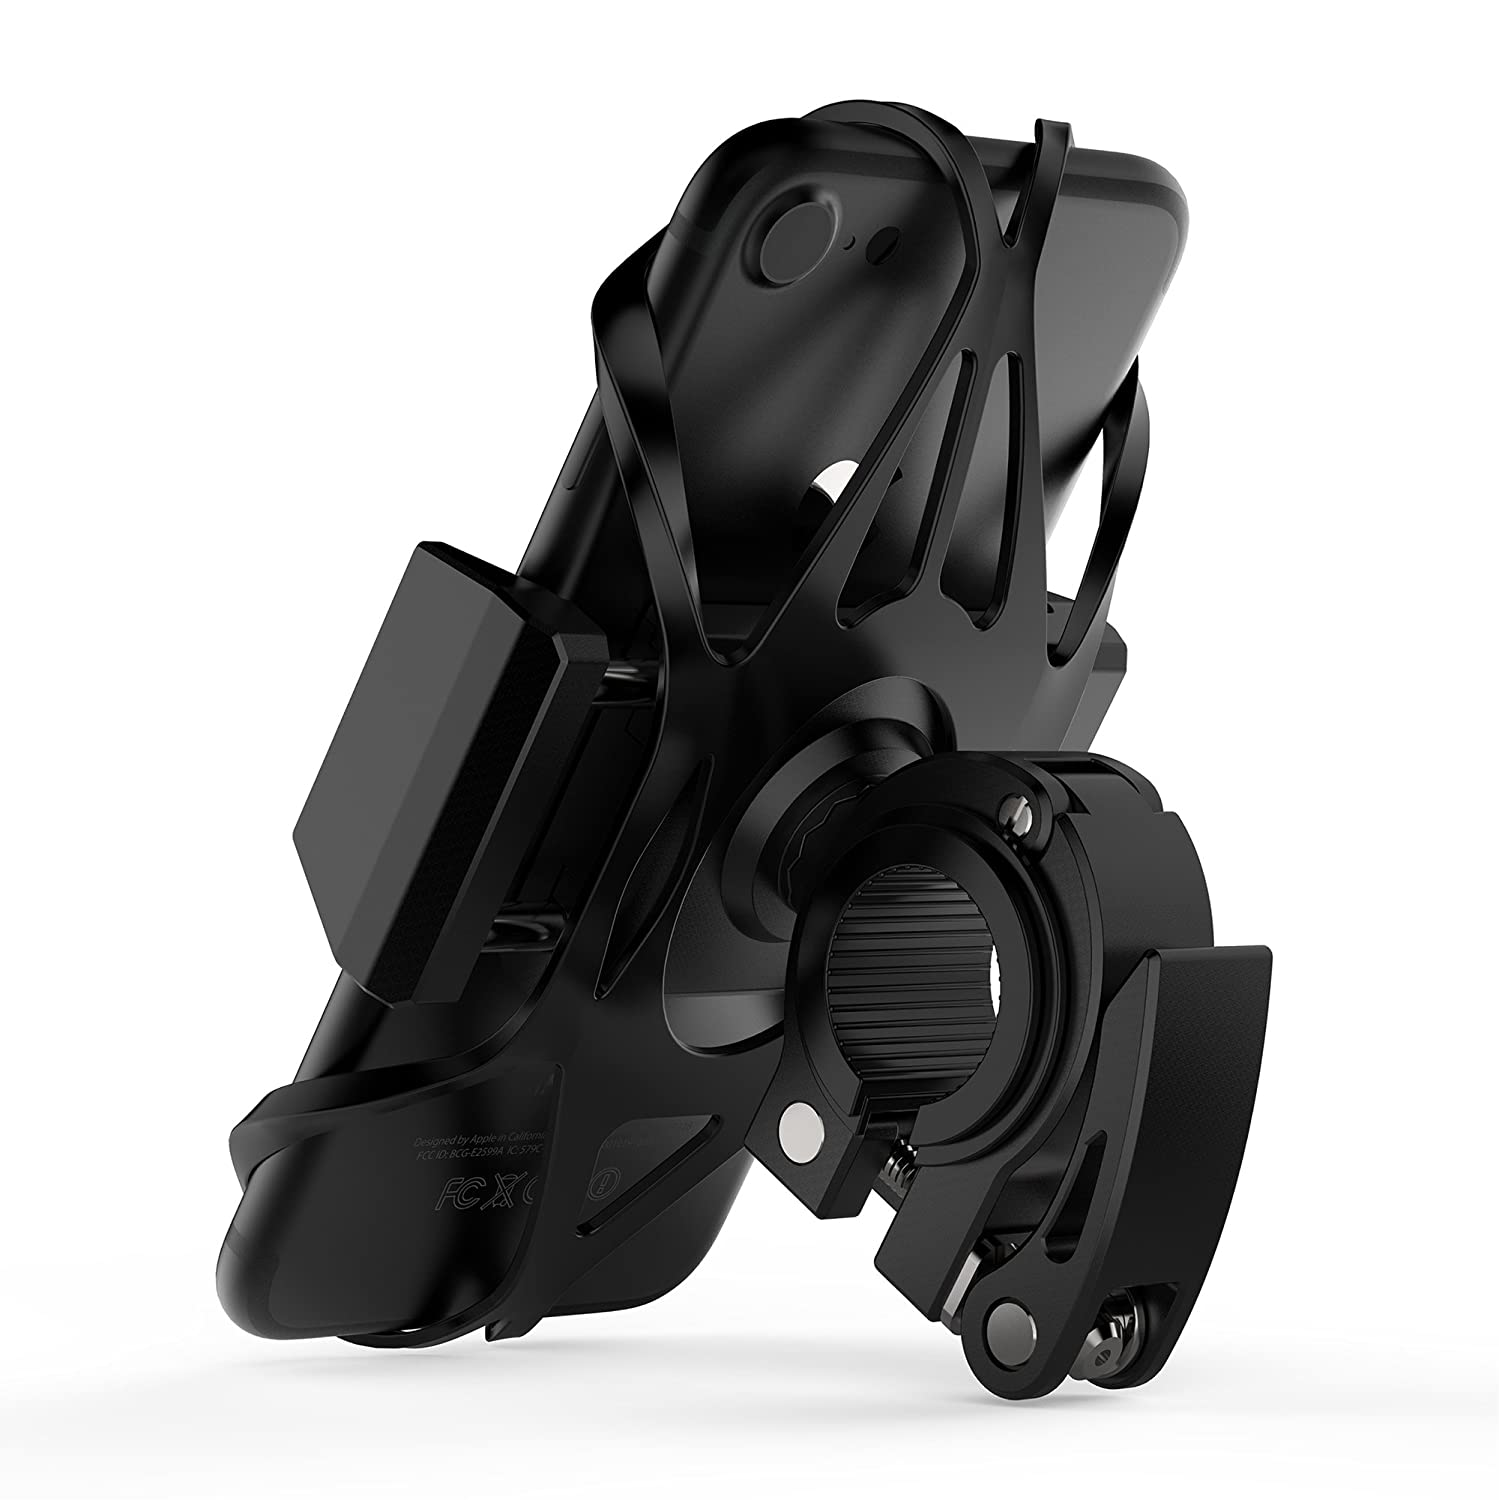 Widras Phone Bike Mount and Motorcycle Cell Phone Holder 2nd Generation For iPhone X XS 8 7 7s 6 6s 5 5s Plus Samsung Galaxy S10 S9 S8 S7 Note any Smartphone GPS Mountain Road Bicycle Handlebar Cradle